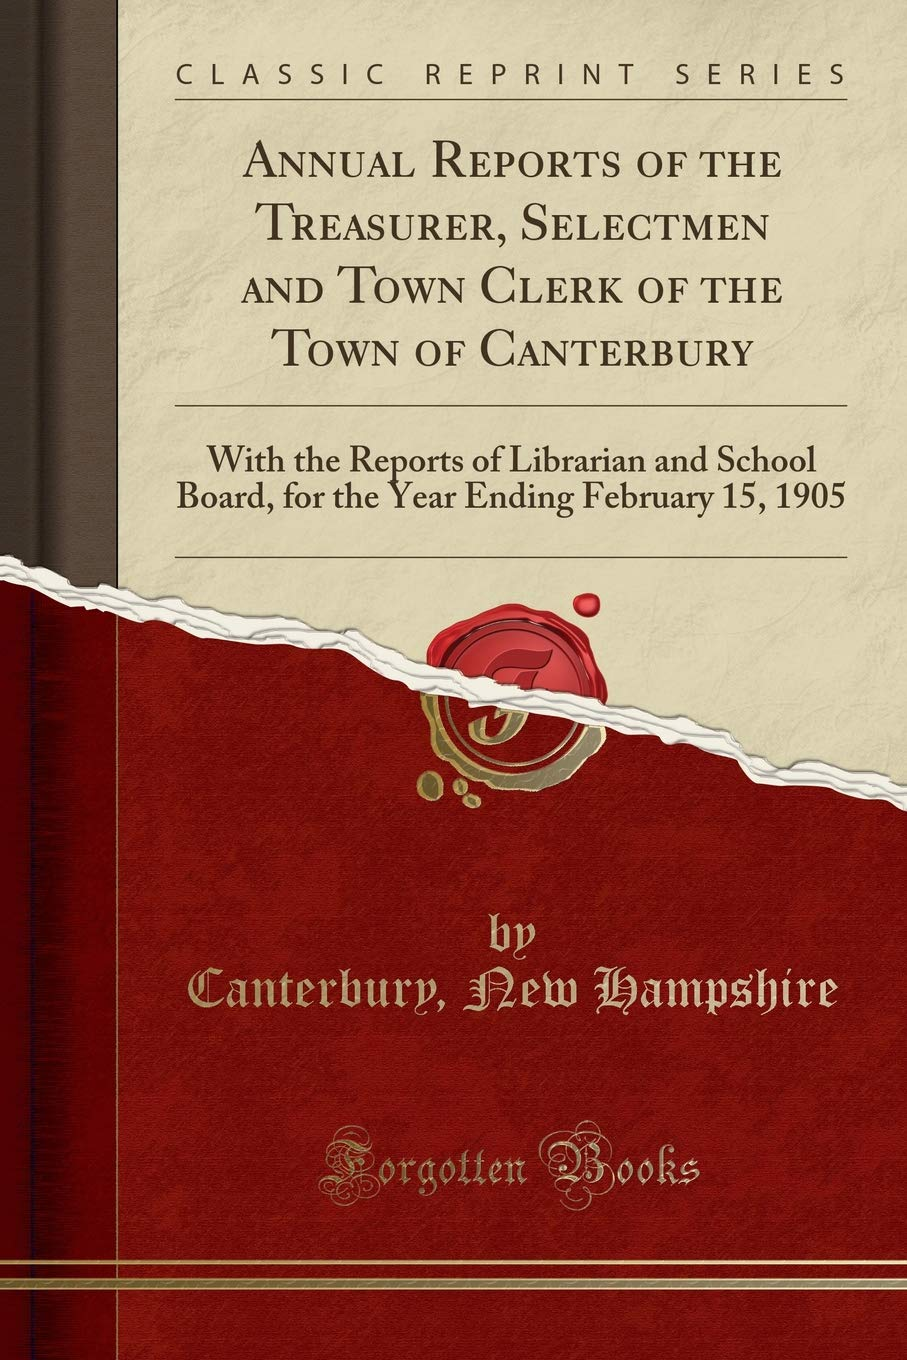 Annual Reports of the Treasurer, Selectmen and Town Clerk of the Town of Canterbury: With the Reports of Librarian and School Board, for the Year Ending February 15, 1905 (Classic Reprint) ebook